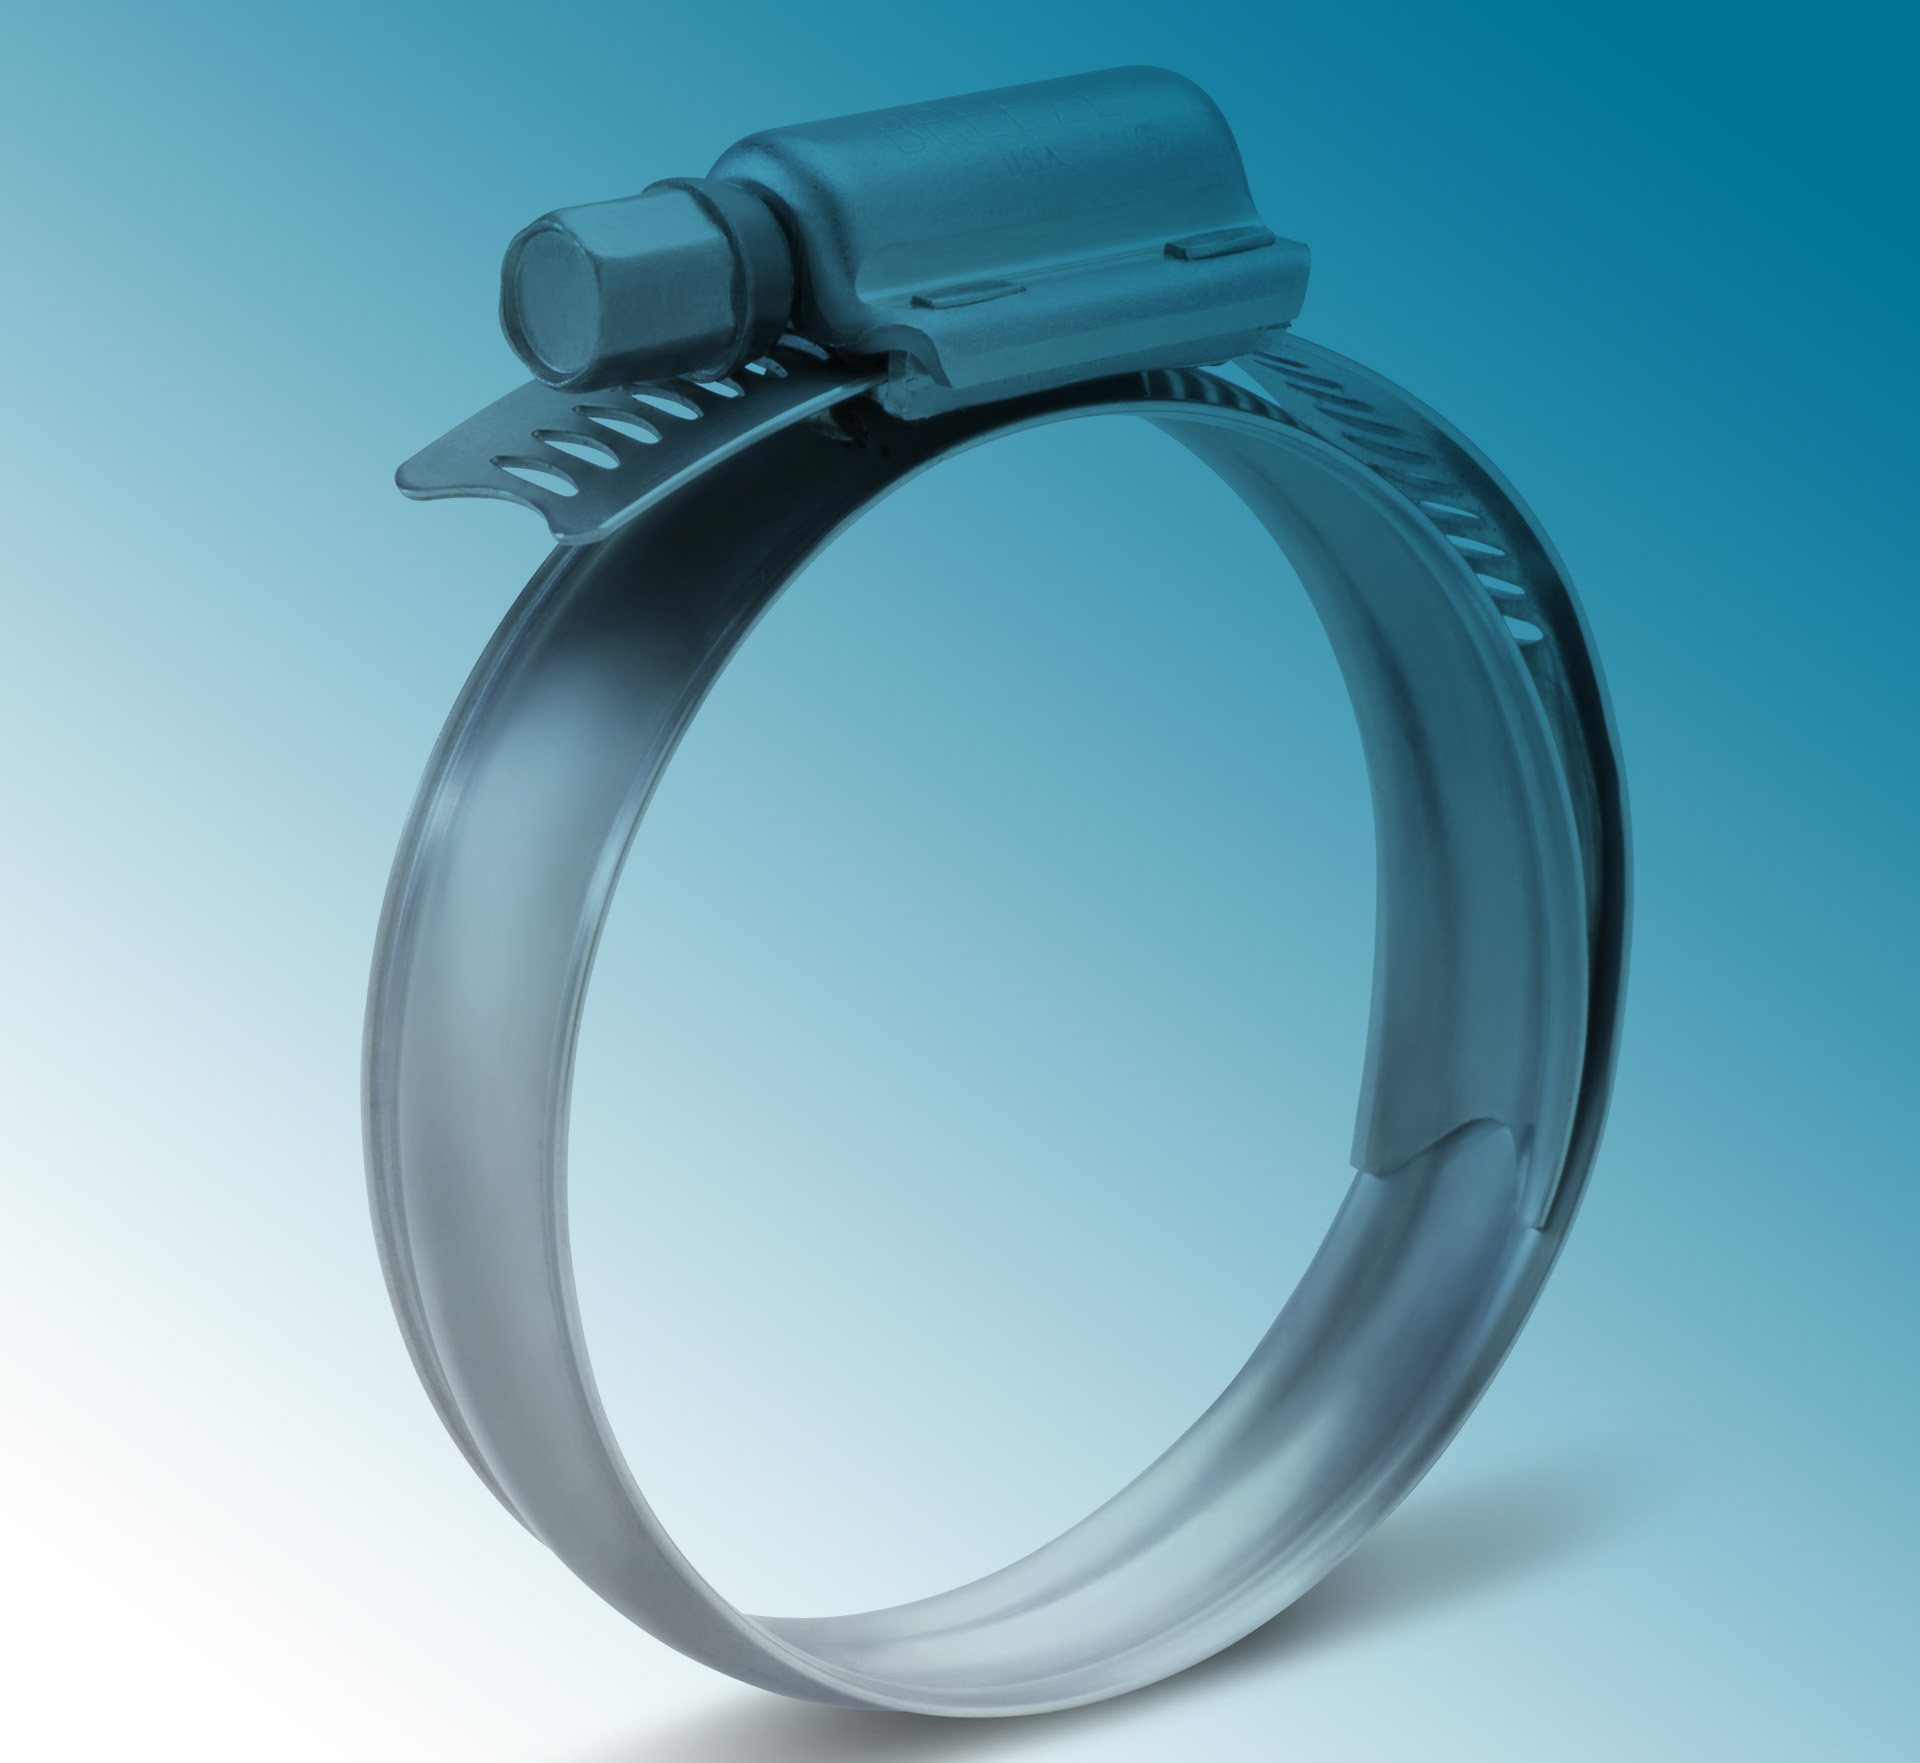 Stainless Steel Band and Ring